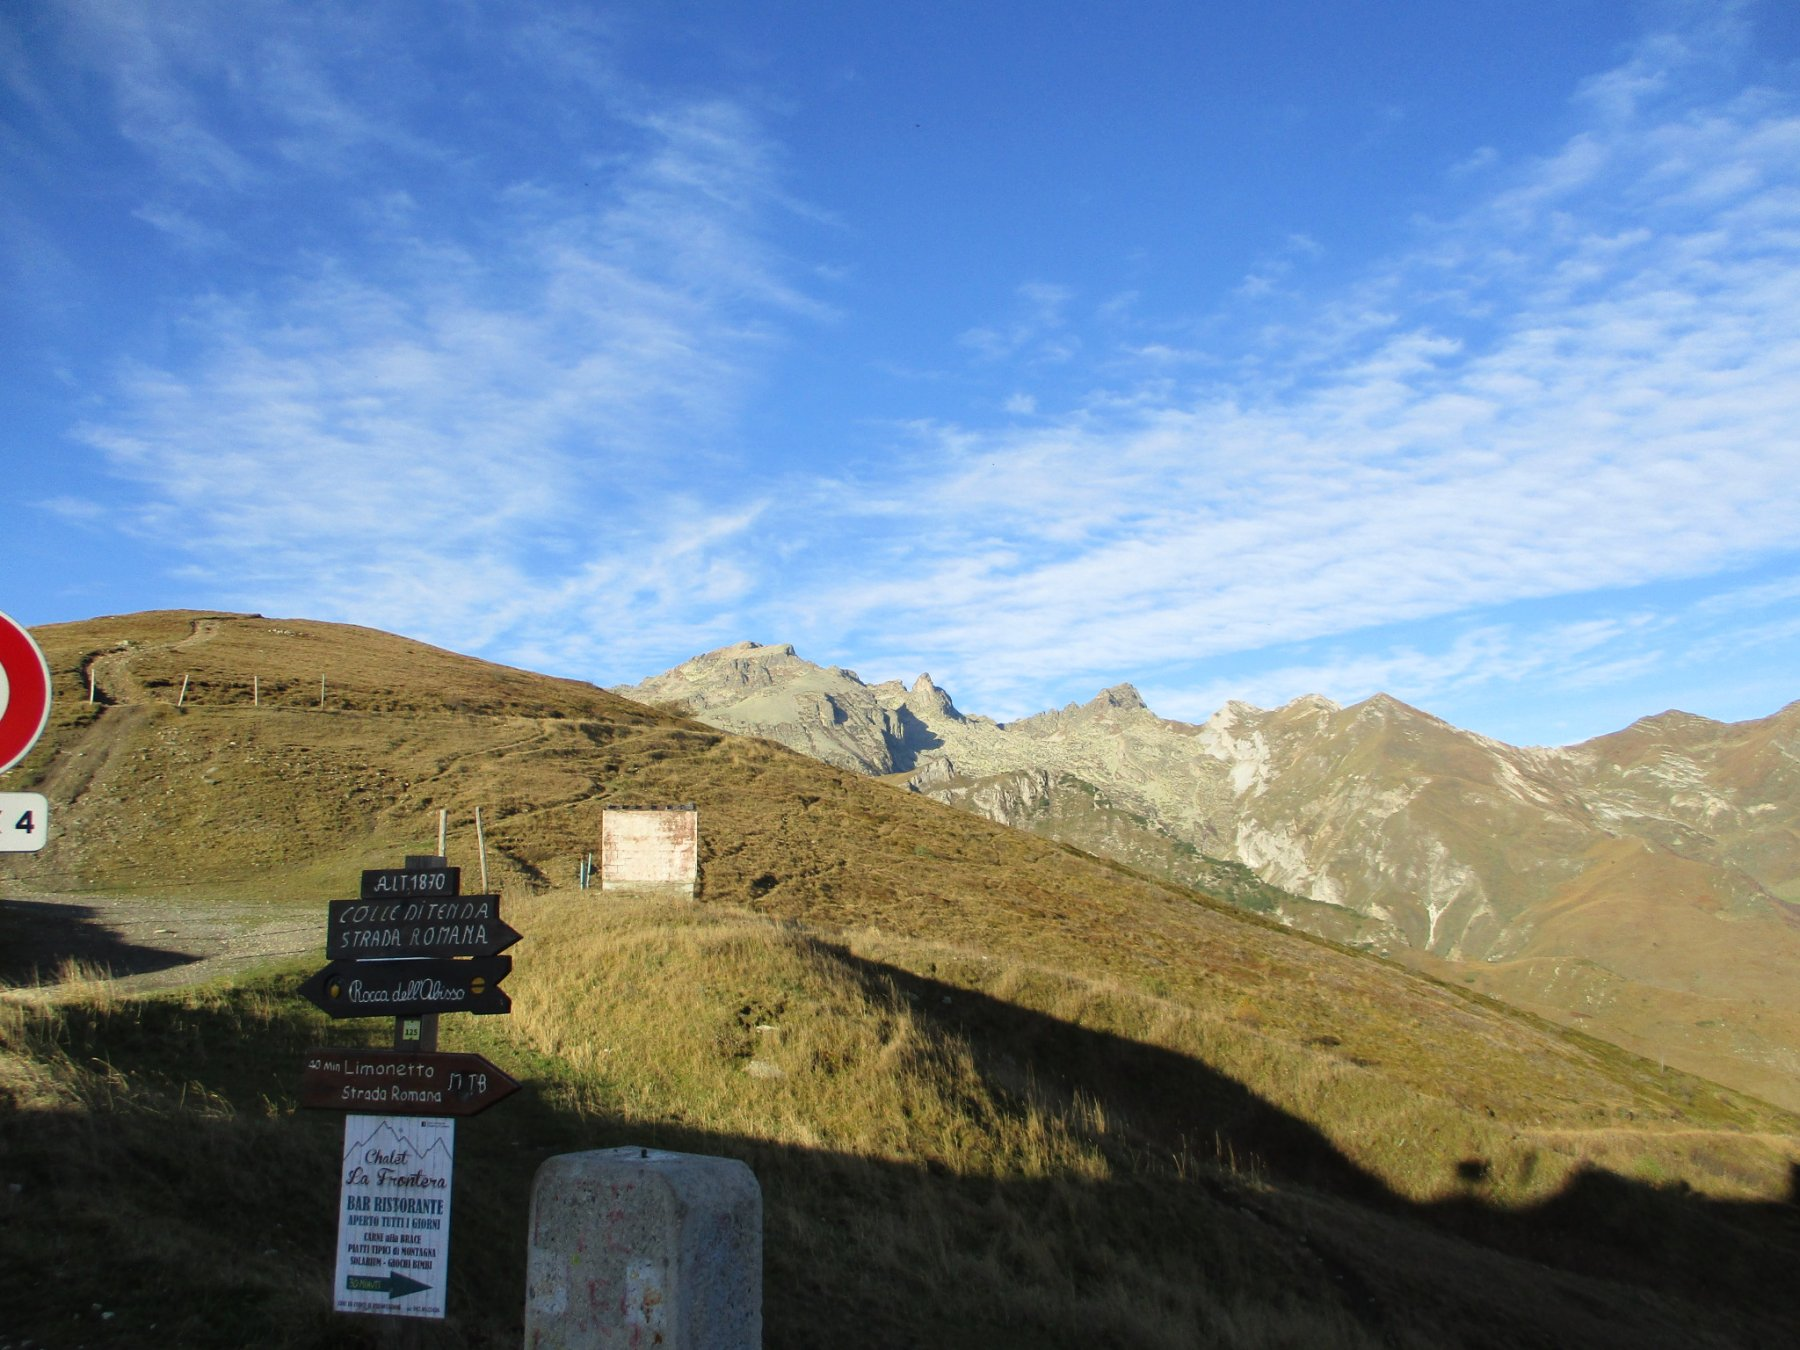 Vista dal Colle di Tenda